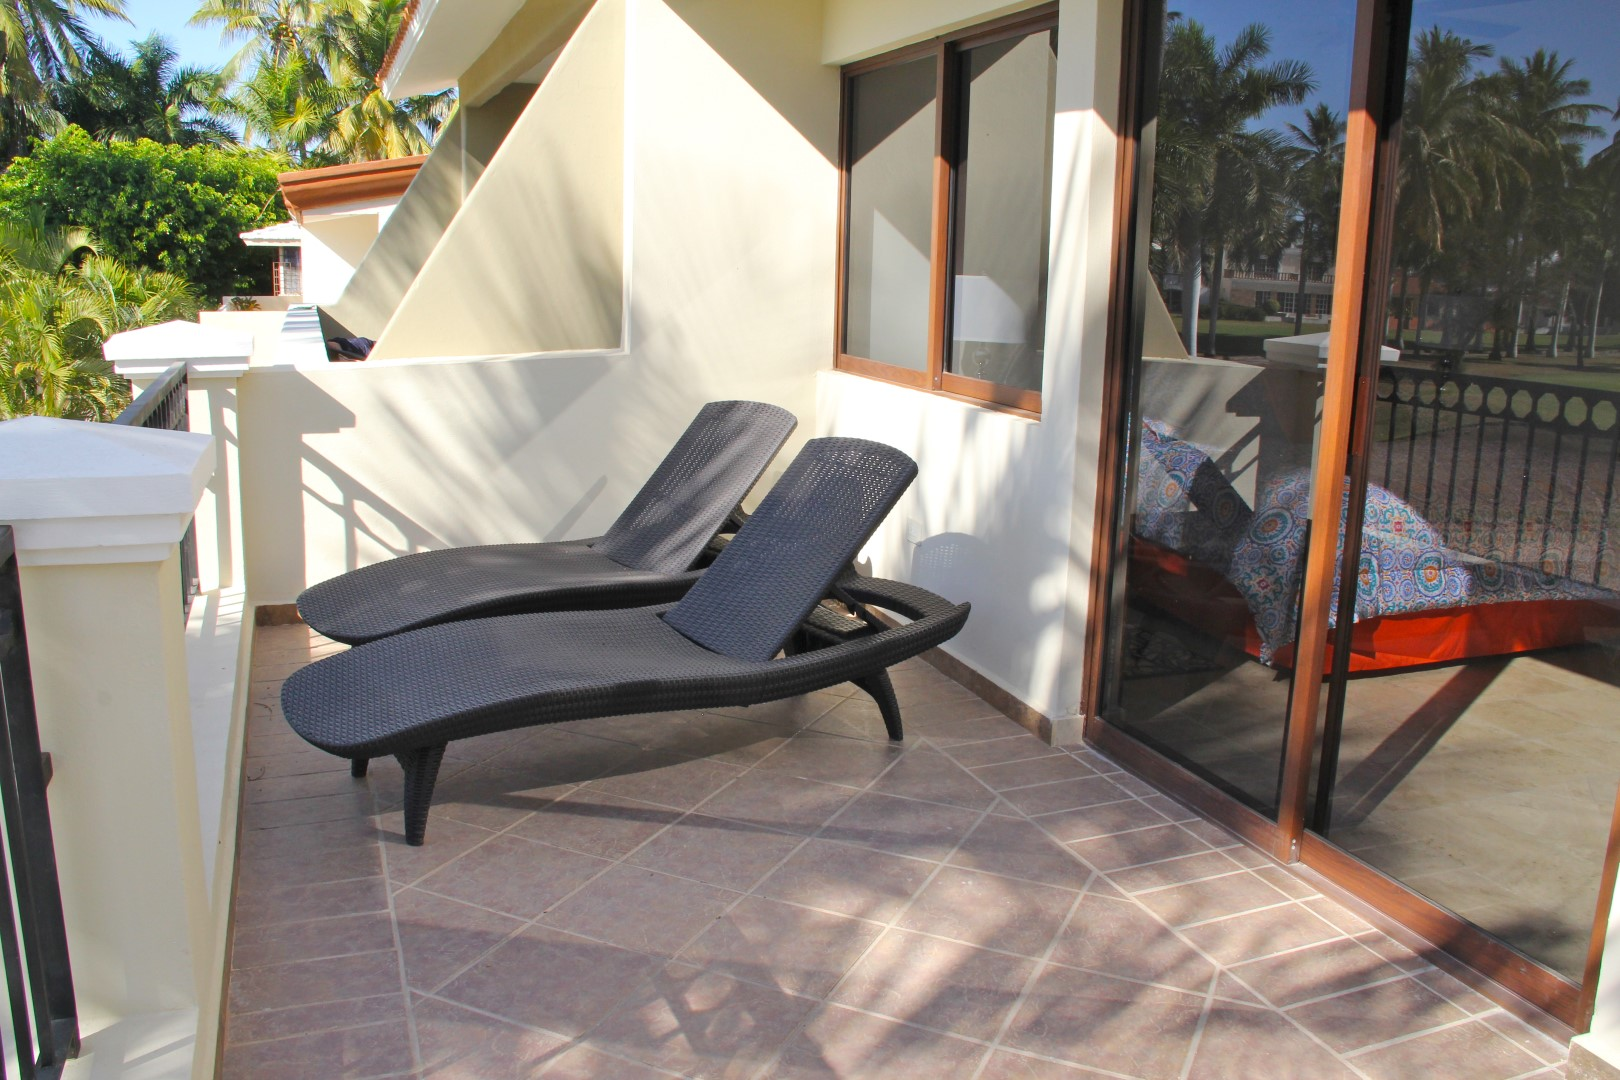 Large terrace with loungers